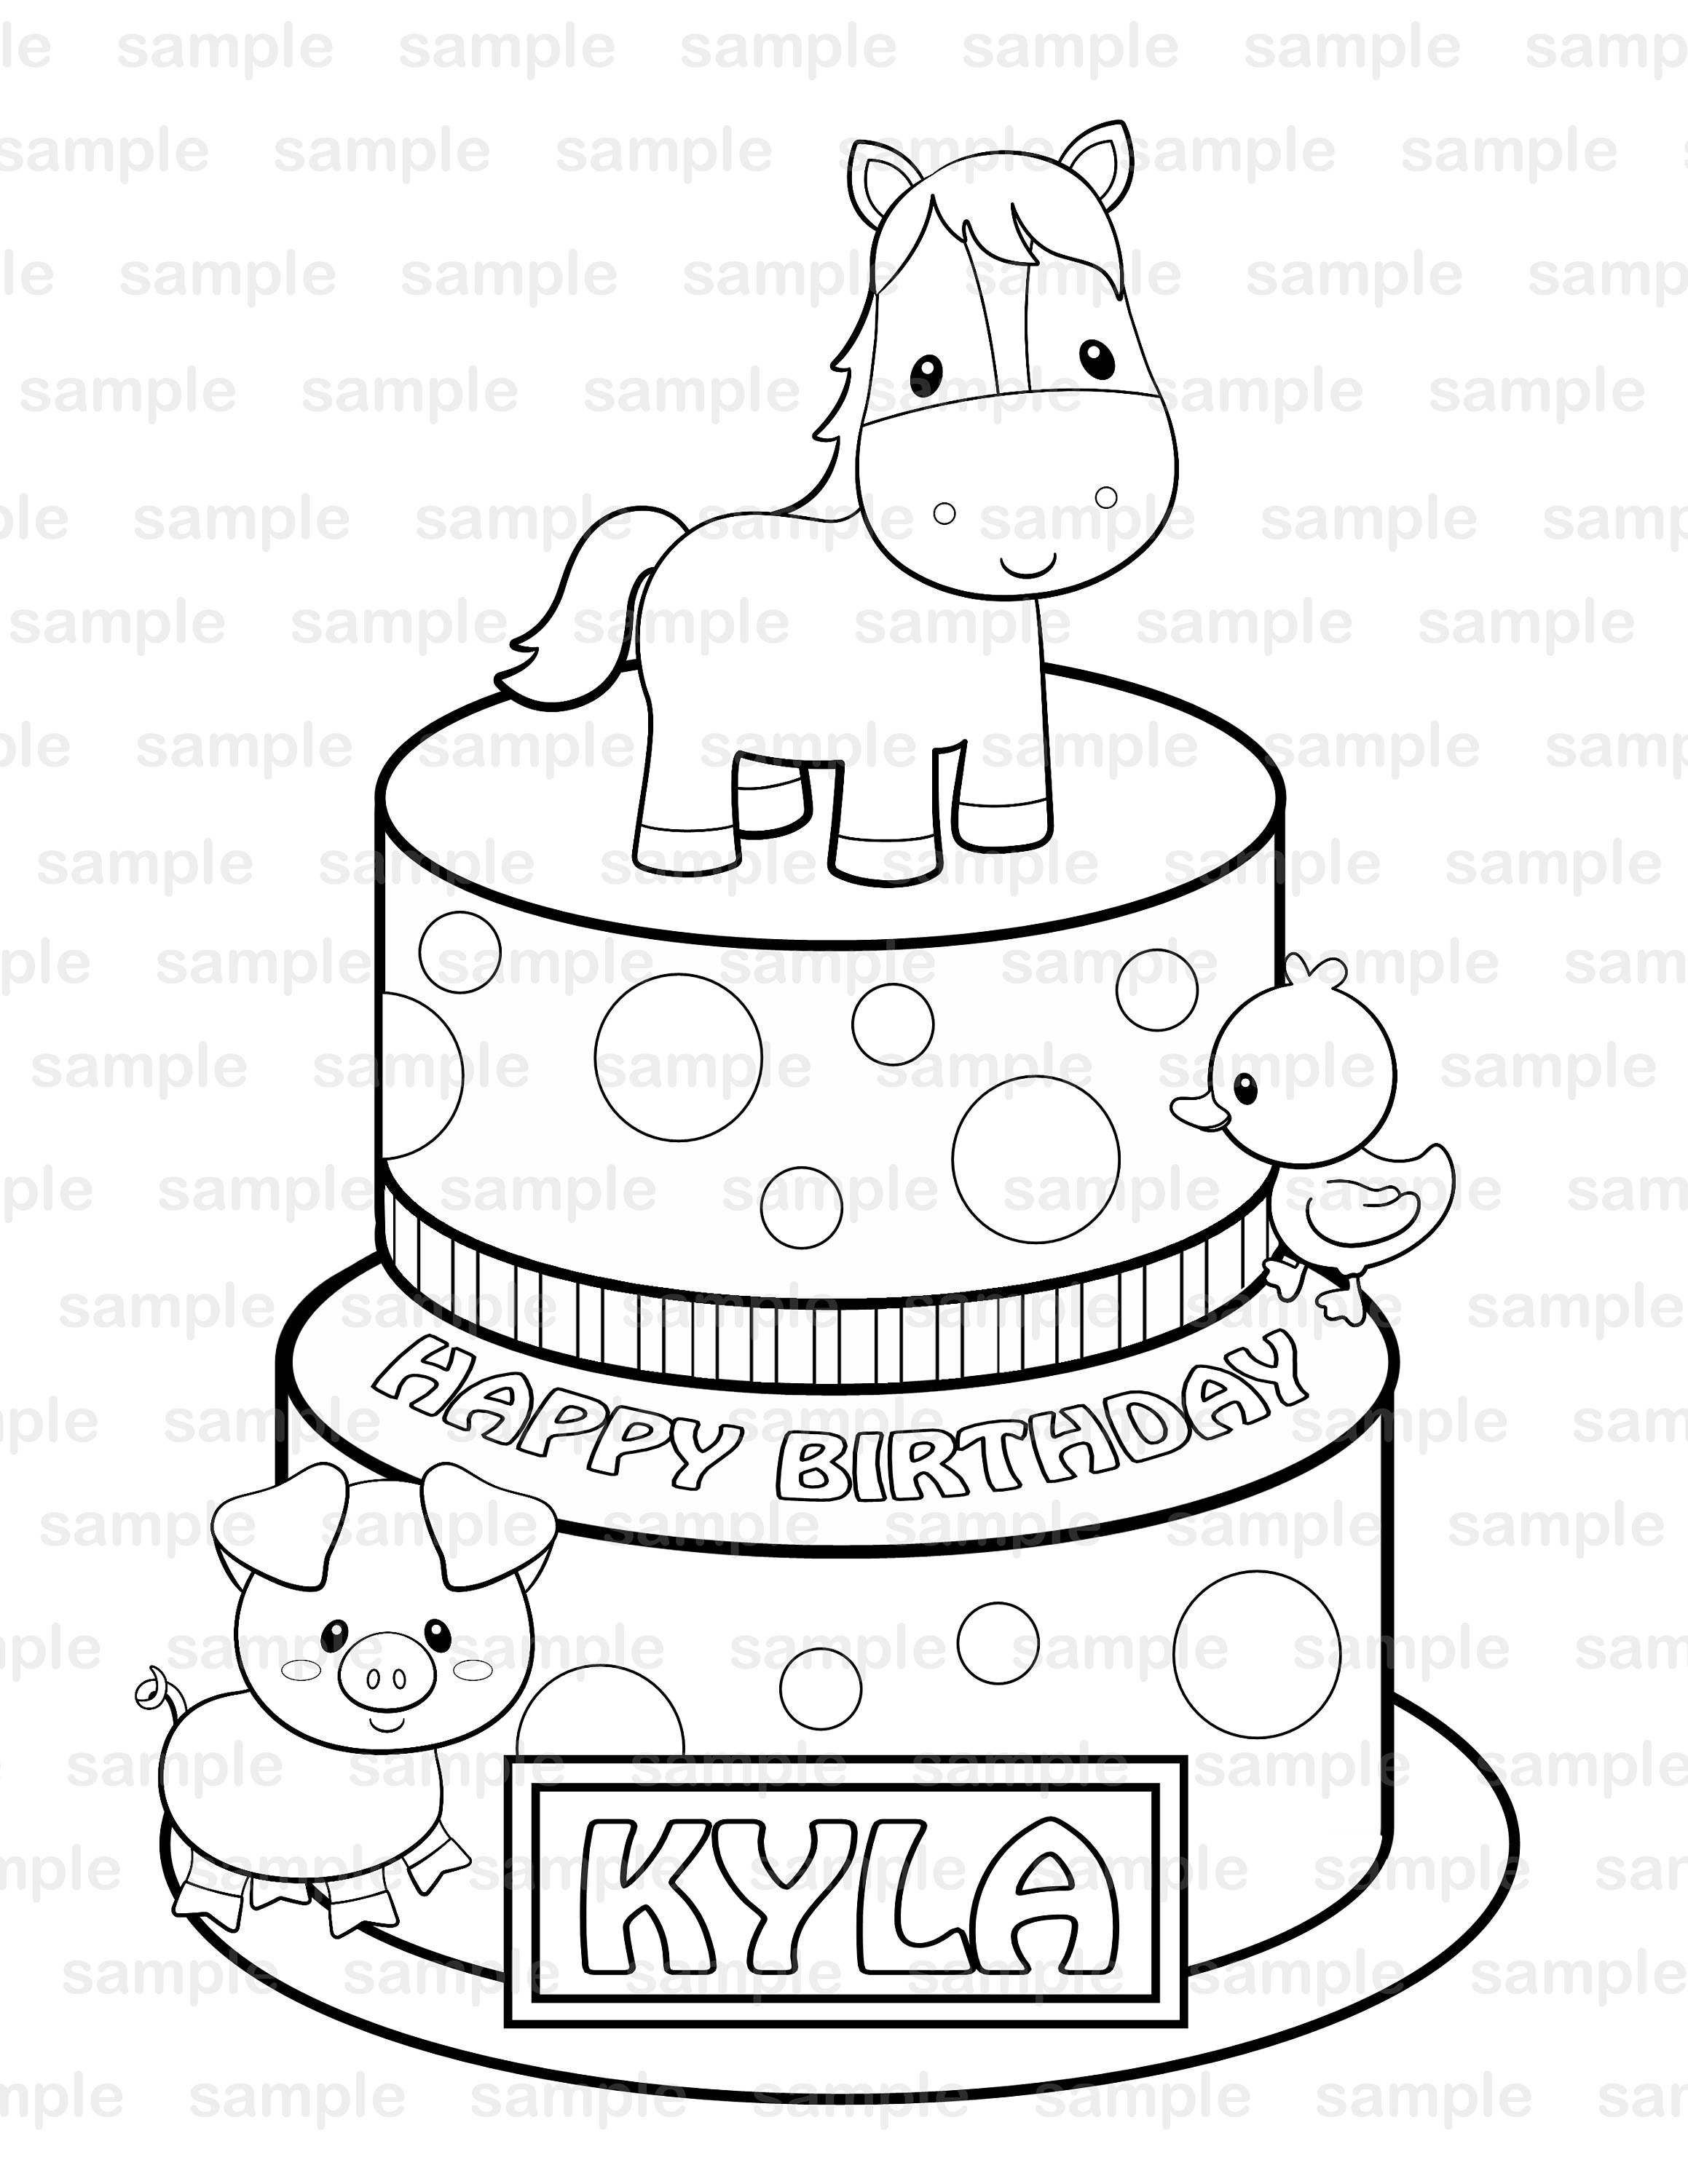 personalized birthday coloring pages | Personalized Printable Farm Birthday Party Favor childrens ...